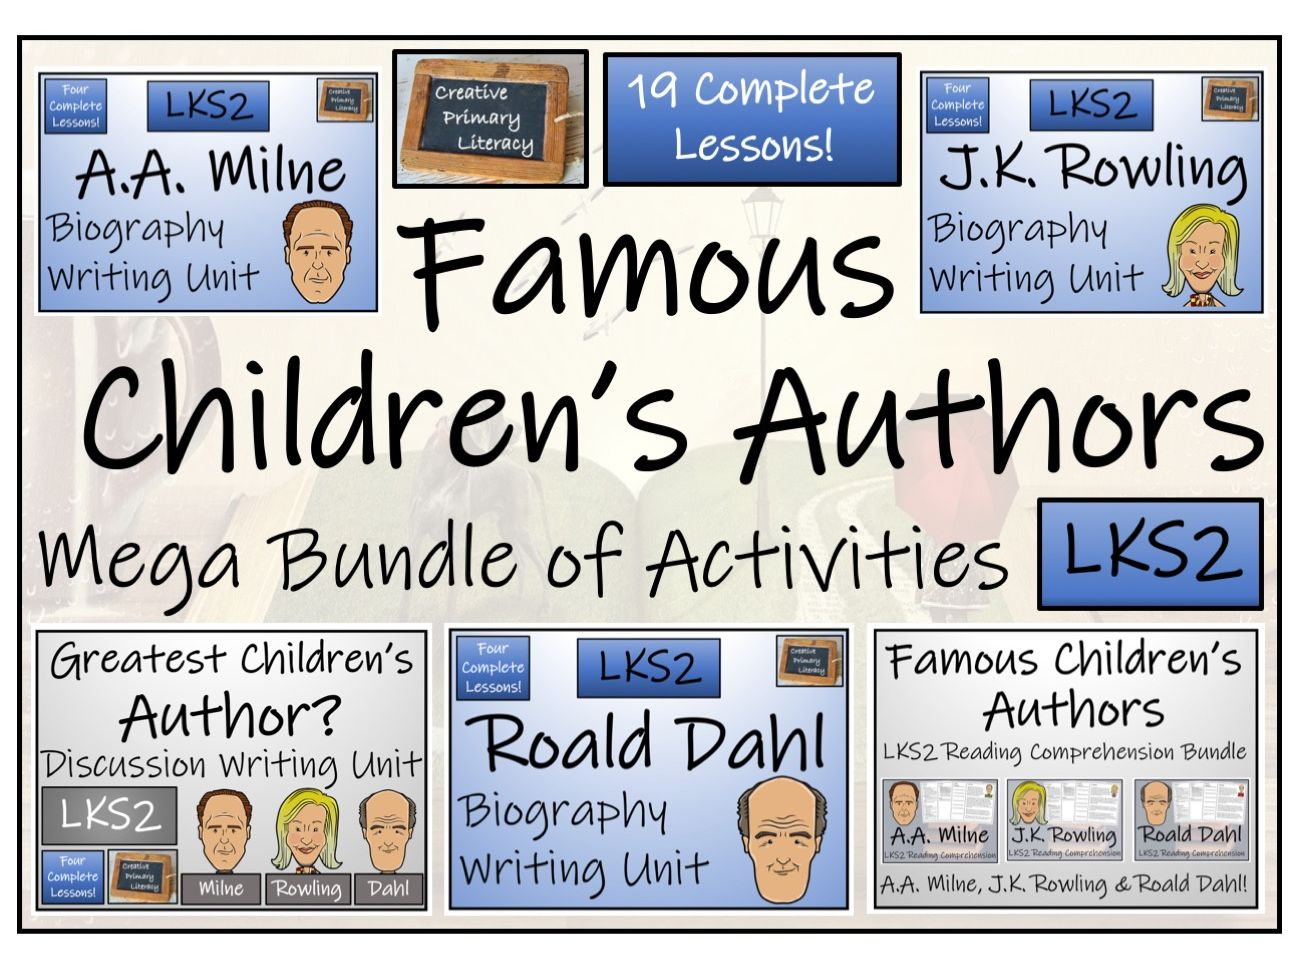 LKS2 Literacy - Famous Children's Authors Mega Bundle of Reading & Writing Activities